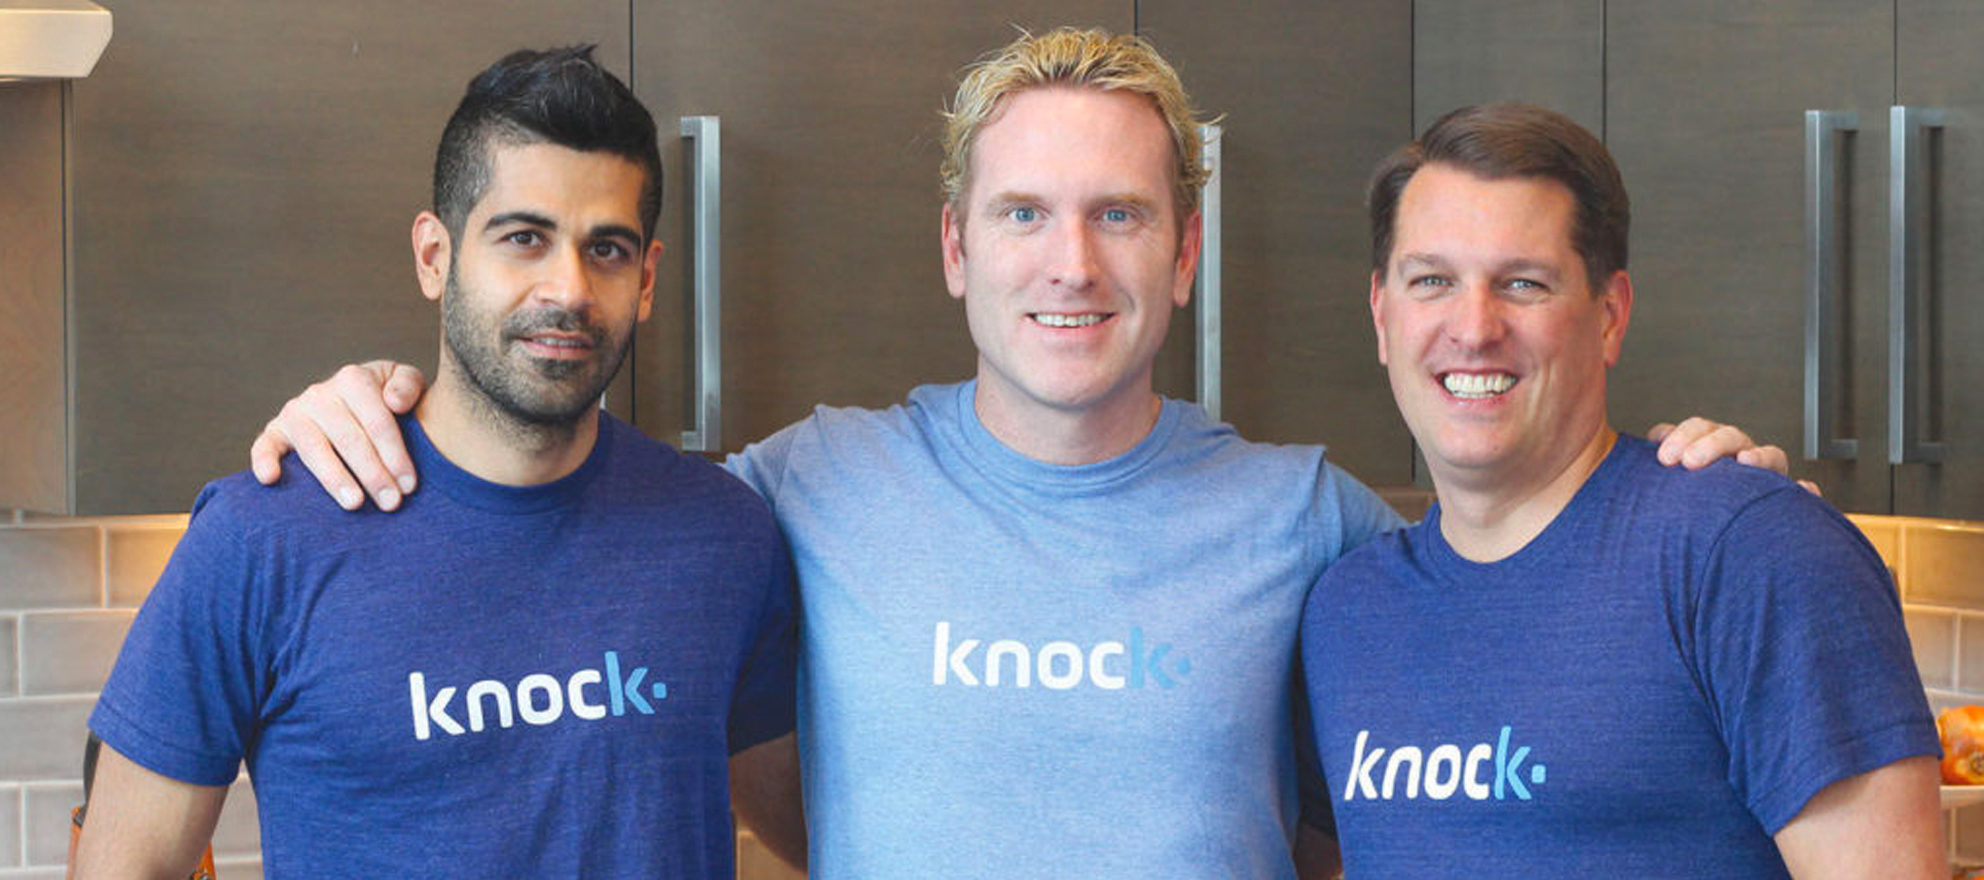 'We're building the next Amazon': Knock CEO Sean Black on Texas expansion and plans to go public